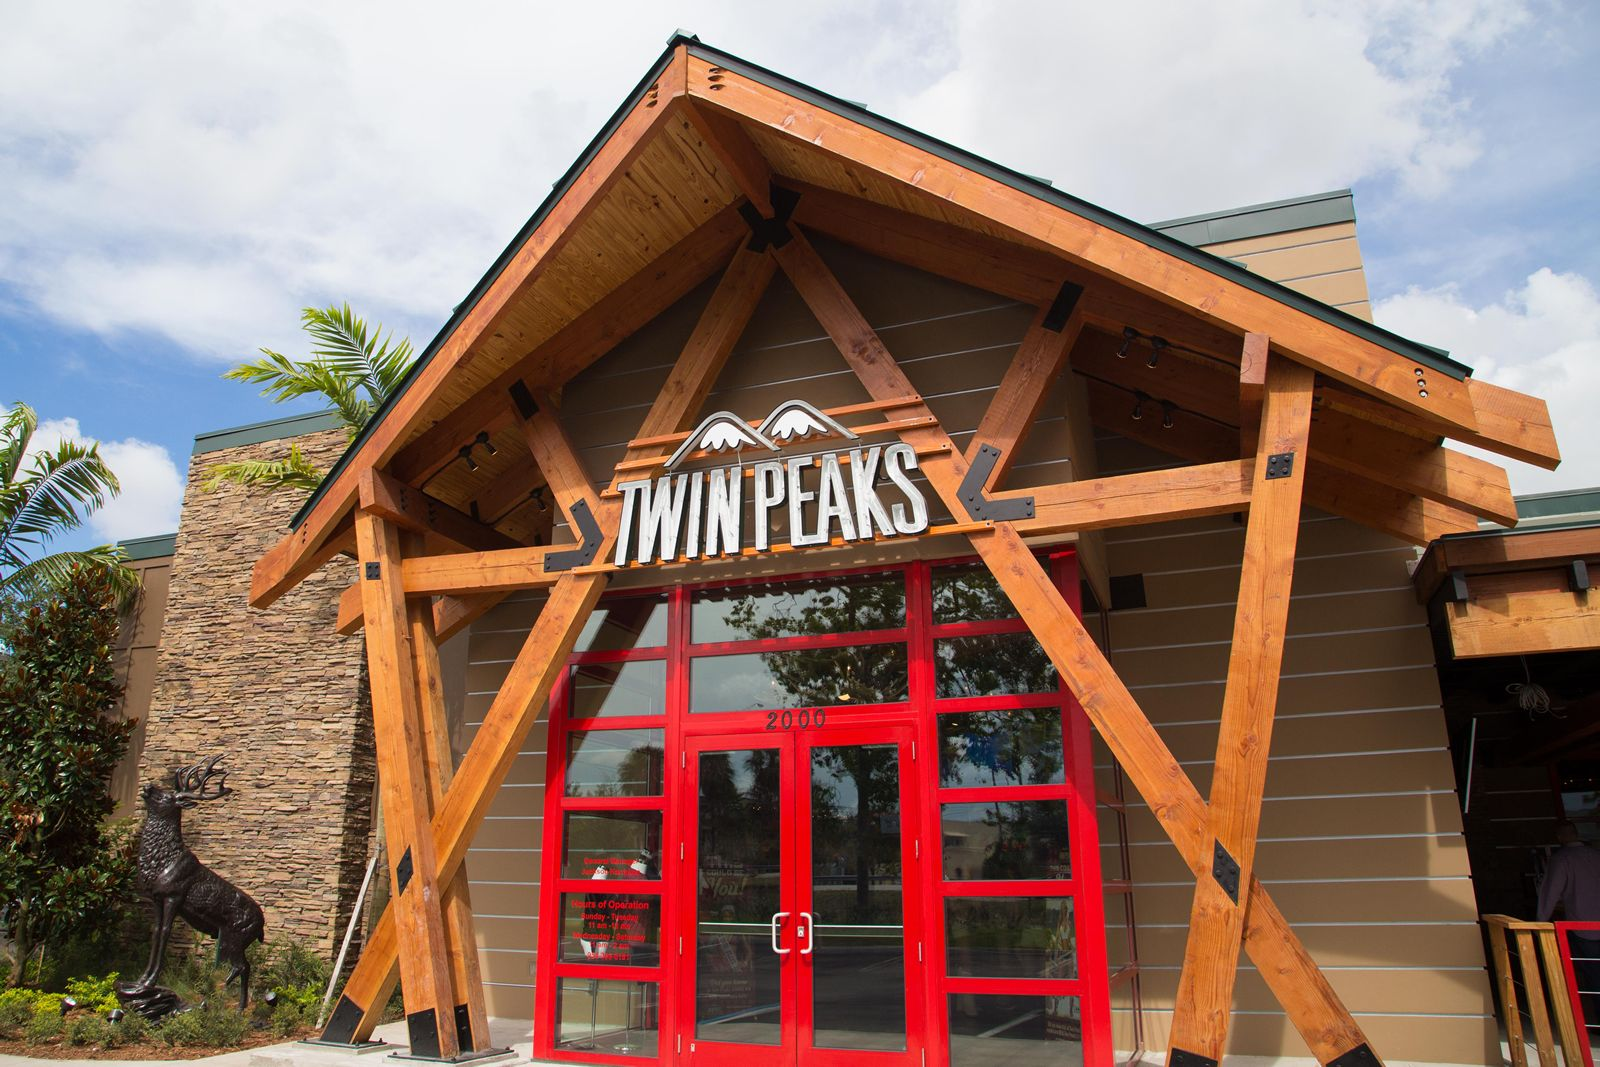 Twin Peaks Elevates Sports Viewing Experience in Austin with Remodel